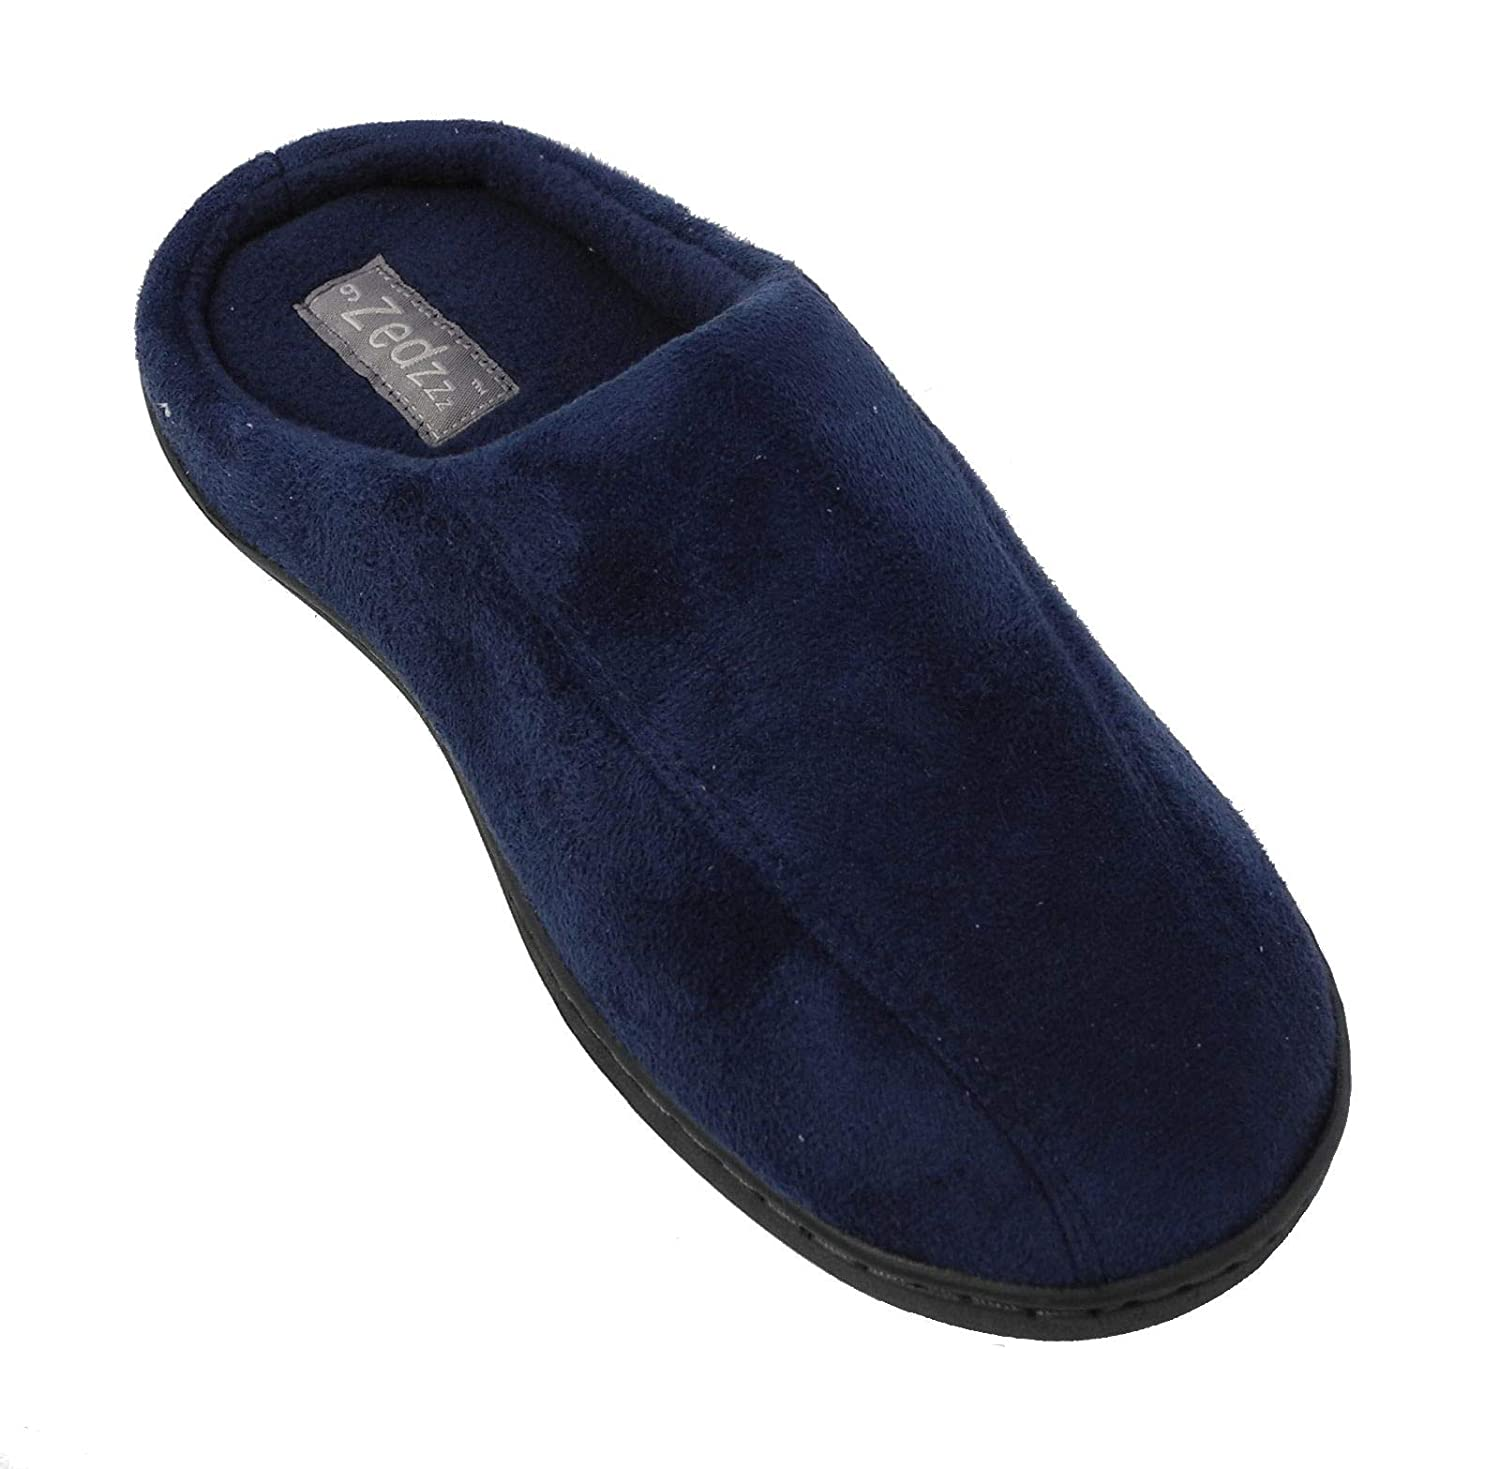 652467ec72a9a Zedzzz Mens Micro Suede Mules Slippers in Blue or Brown Sizes 6 to 12:  Amazon.co.uk: Shoes & Bags